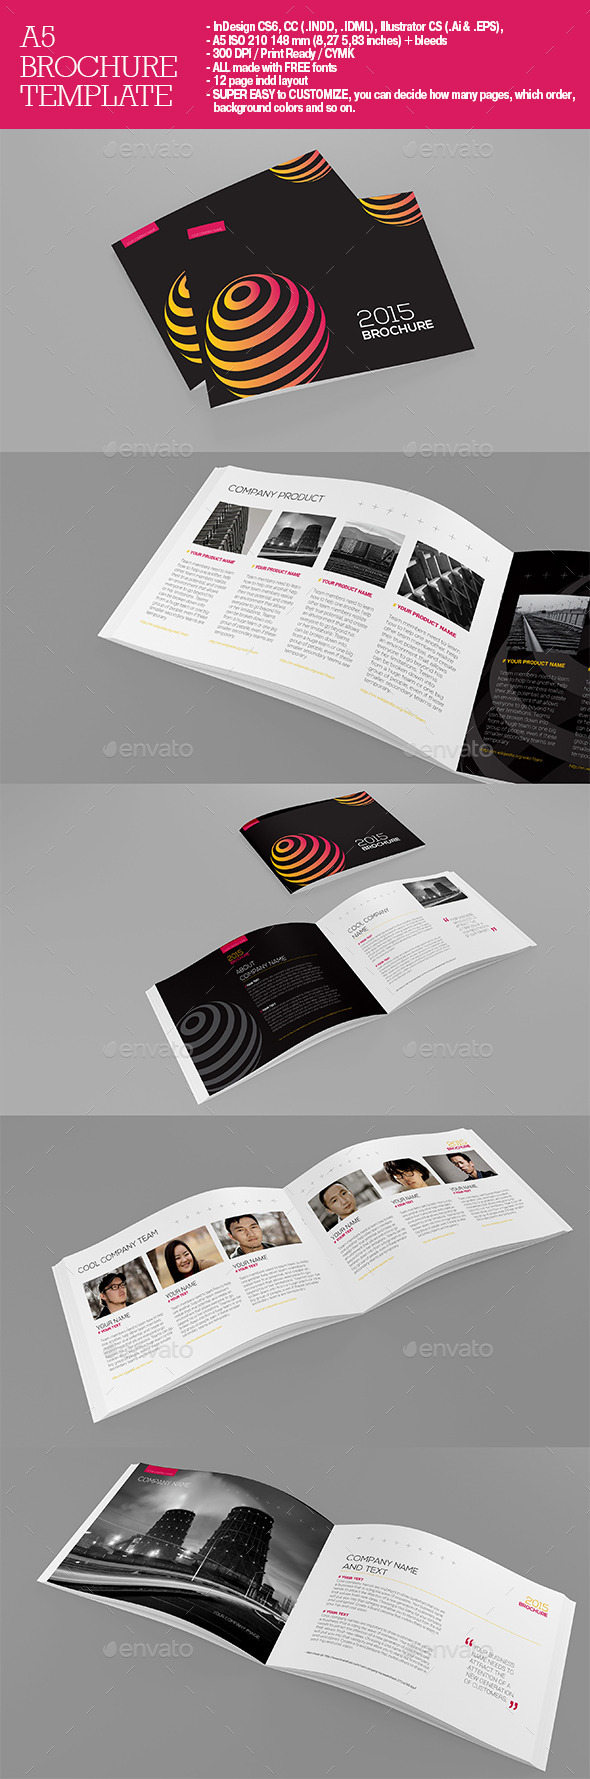 GraphicRiver A5 Brochure 11216932